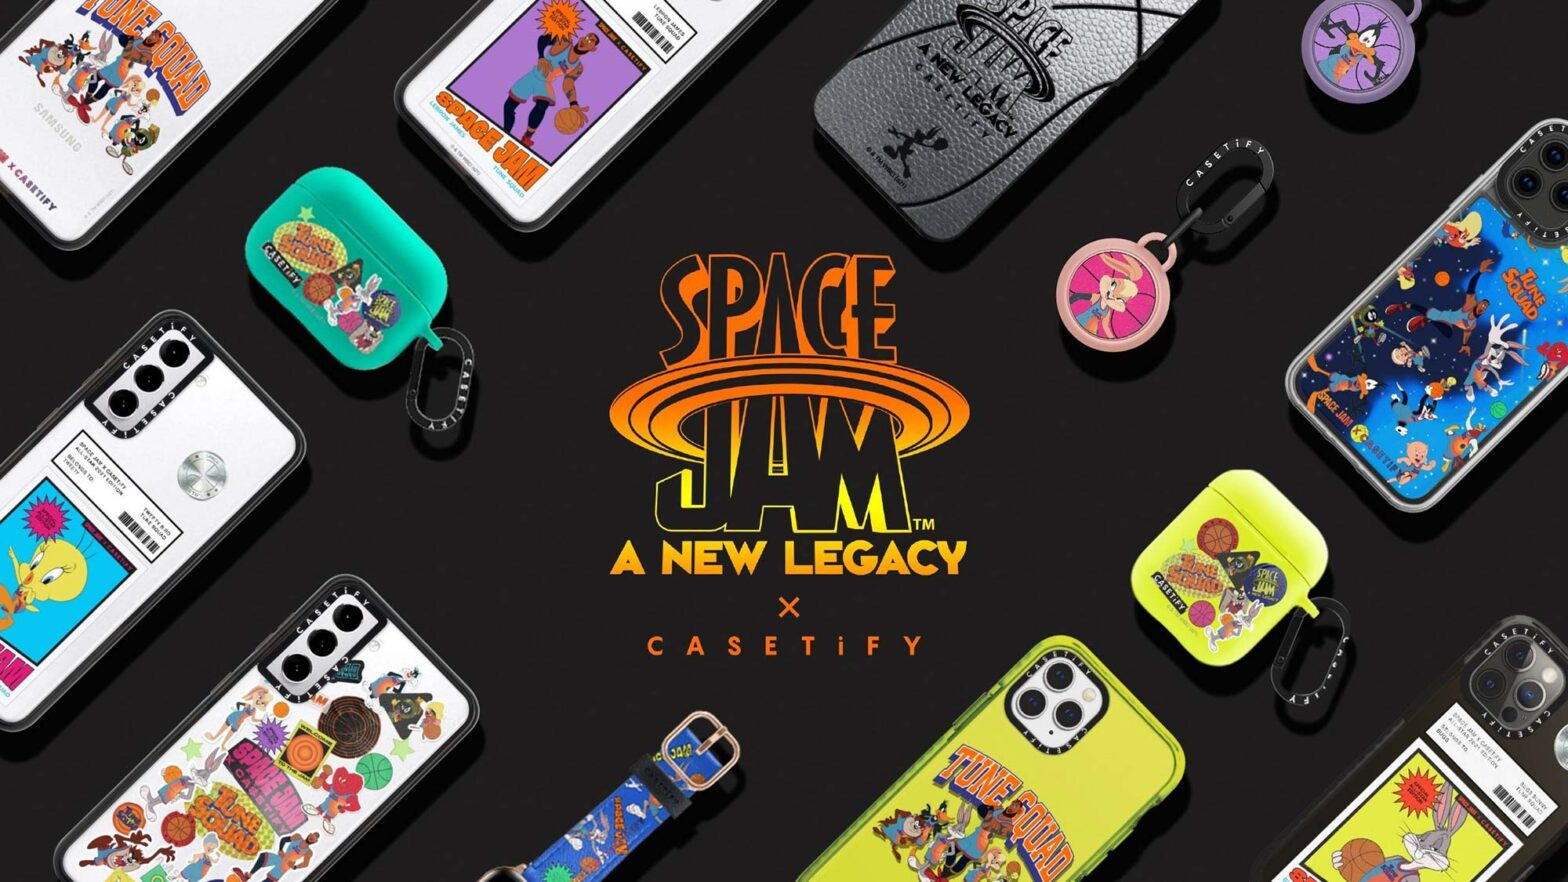 CASETiFY Space Jam A New Legacy Collection